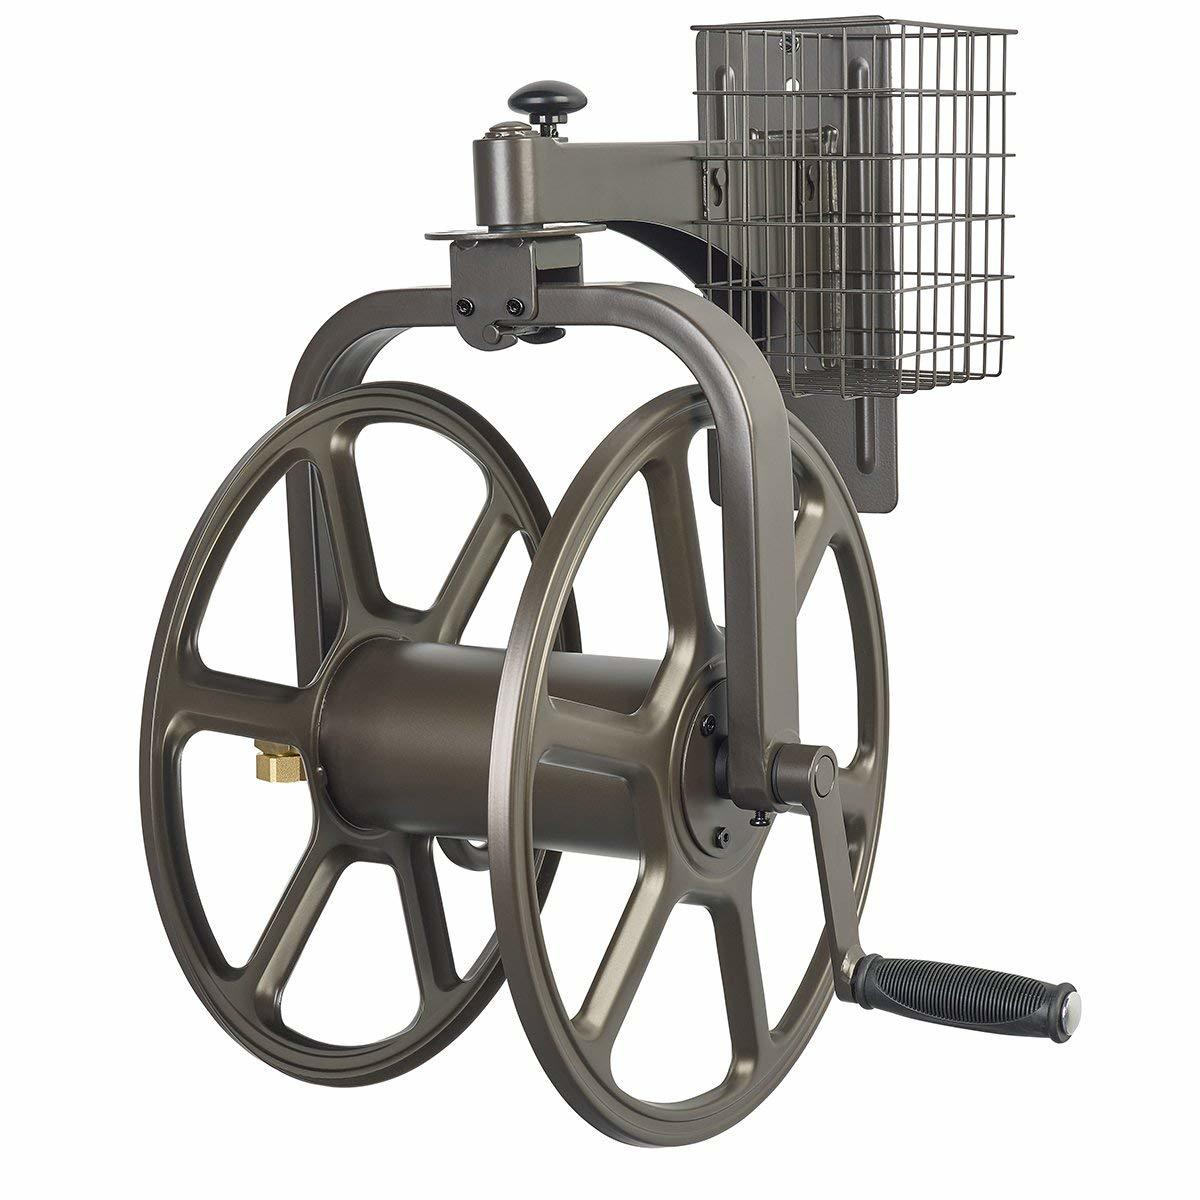 liberty garden products multi directional garden hose reel - Best Garden Hose Reel